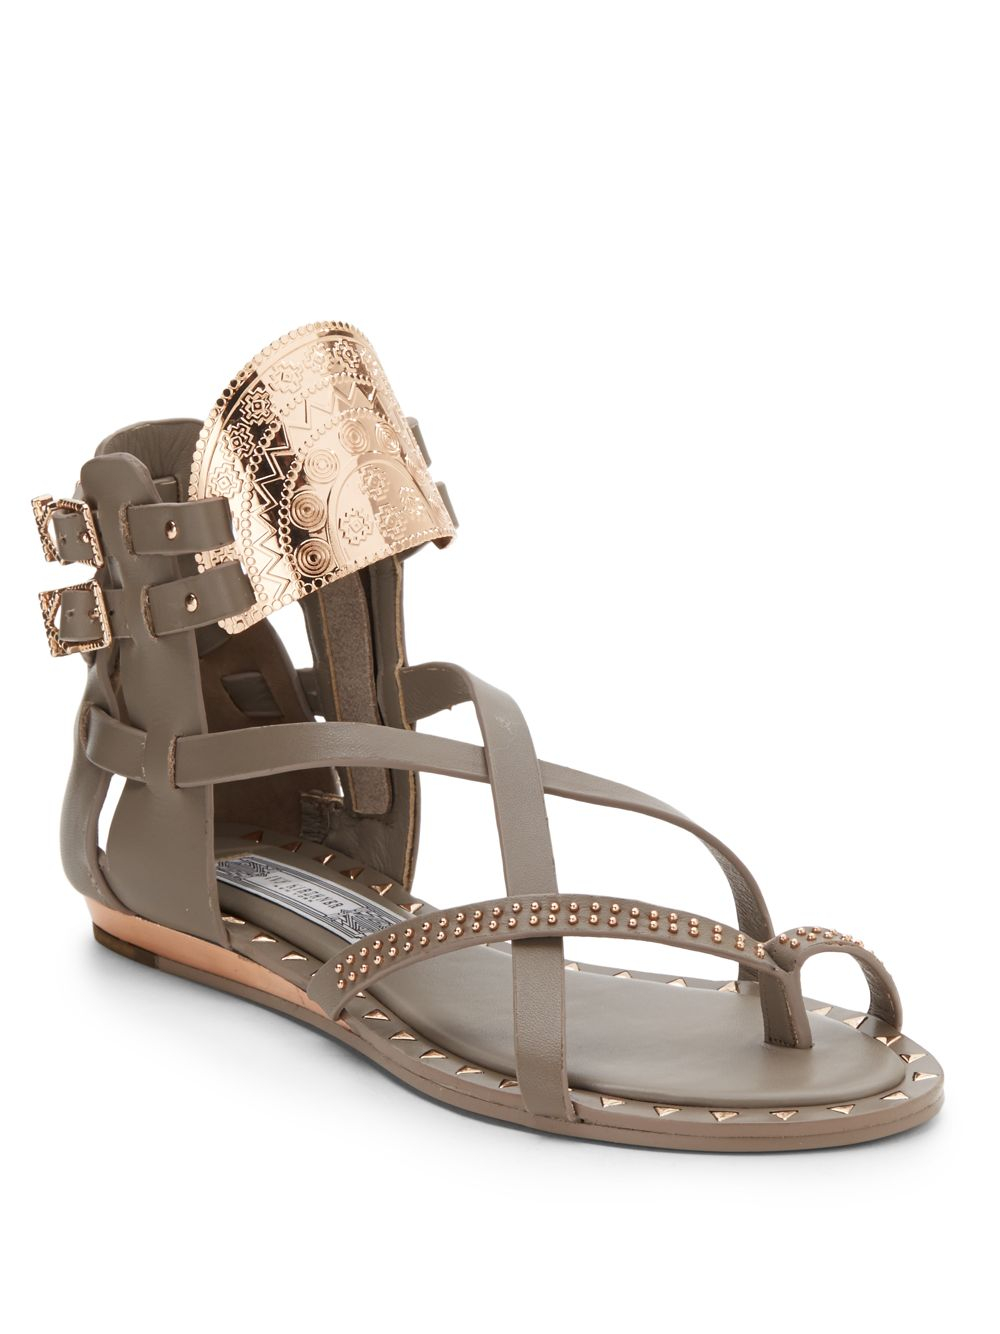 62d9ca02fad8 Lyst - Ivy Kirzhner Bacchus Leather Gladiator Sandals in Gray